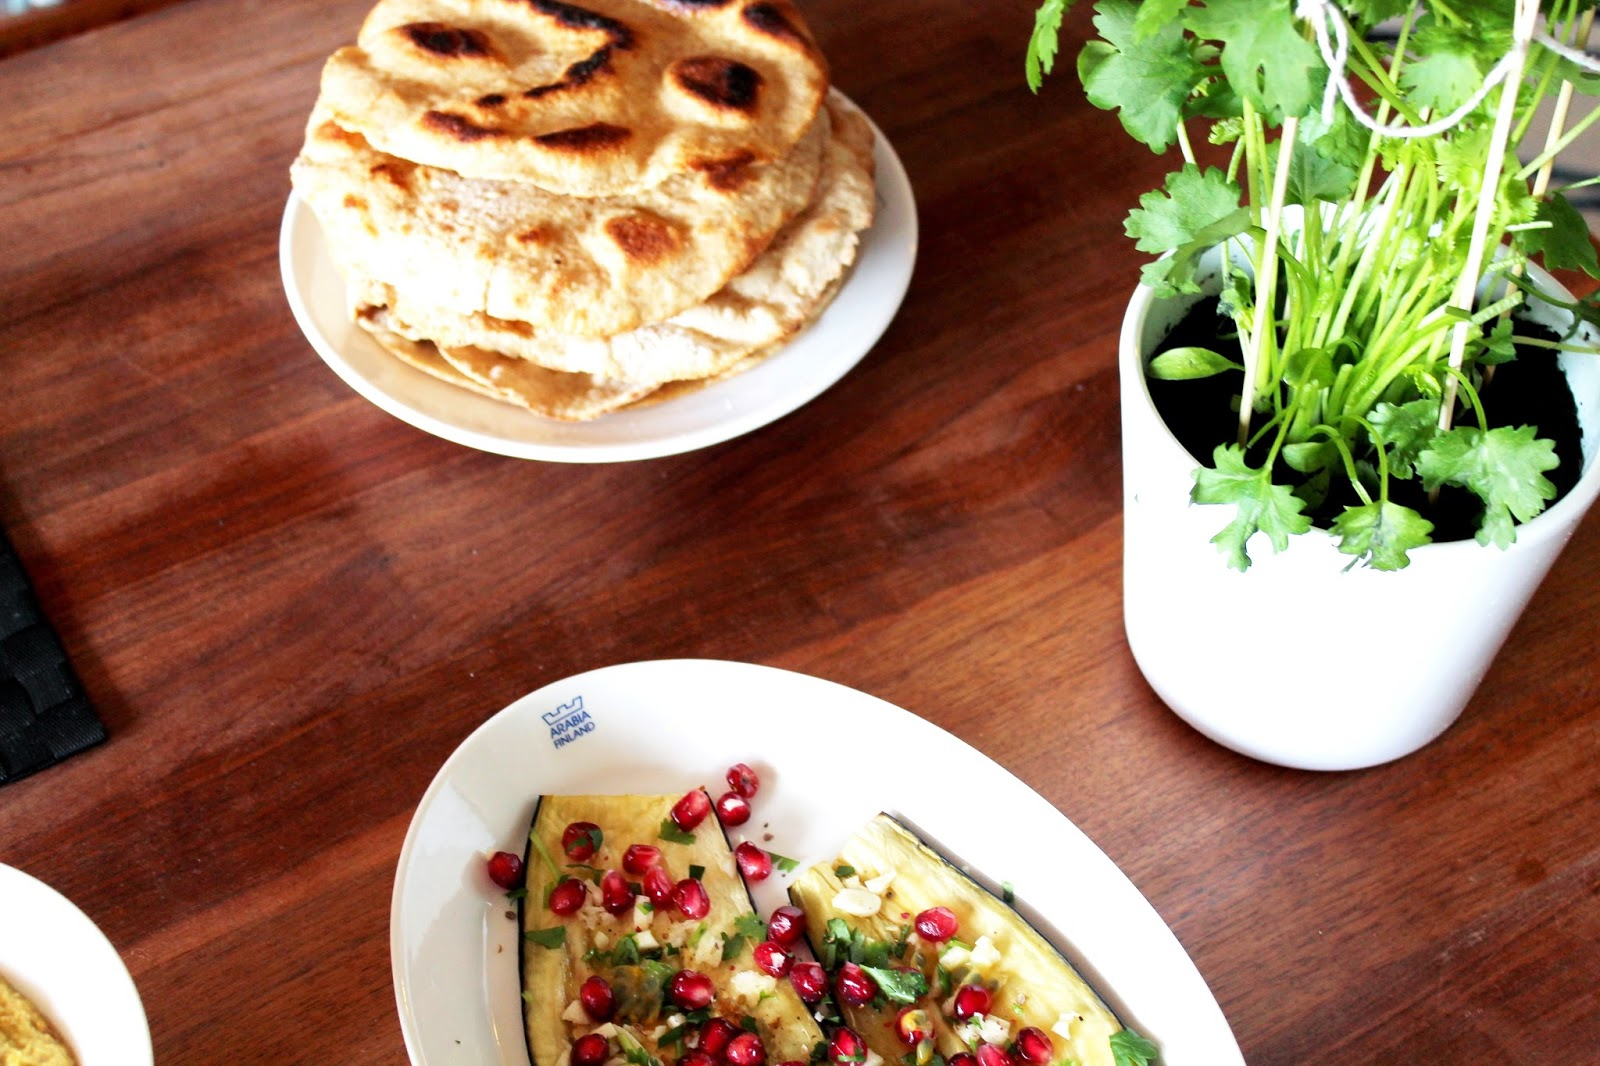 Eggplants, hummus and flat bread | Alinan kotona blog